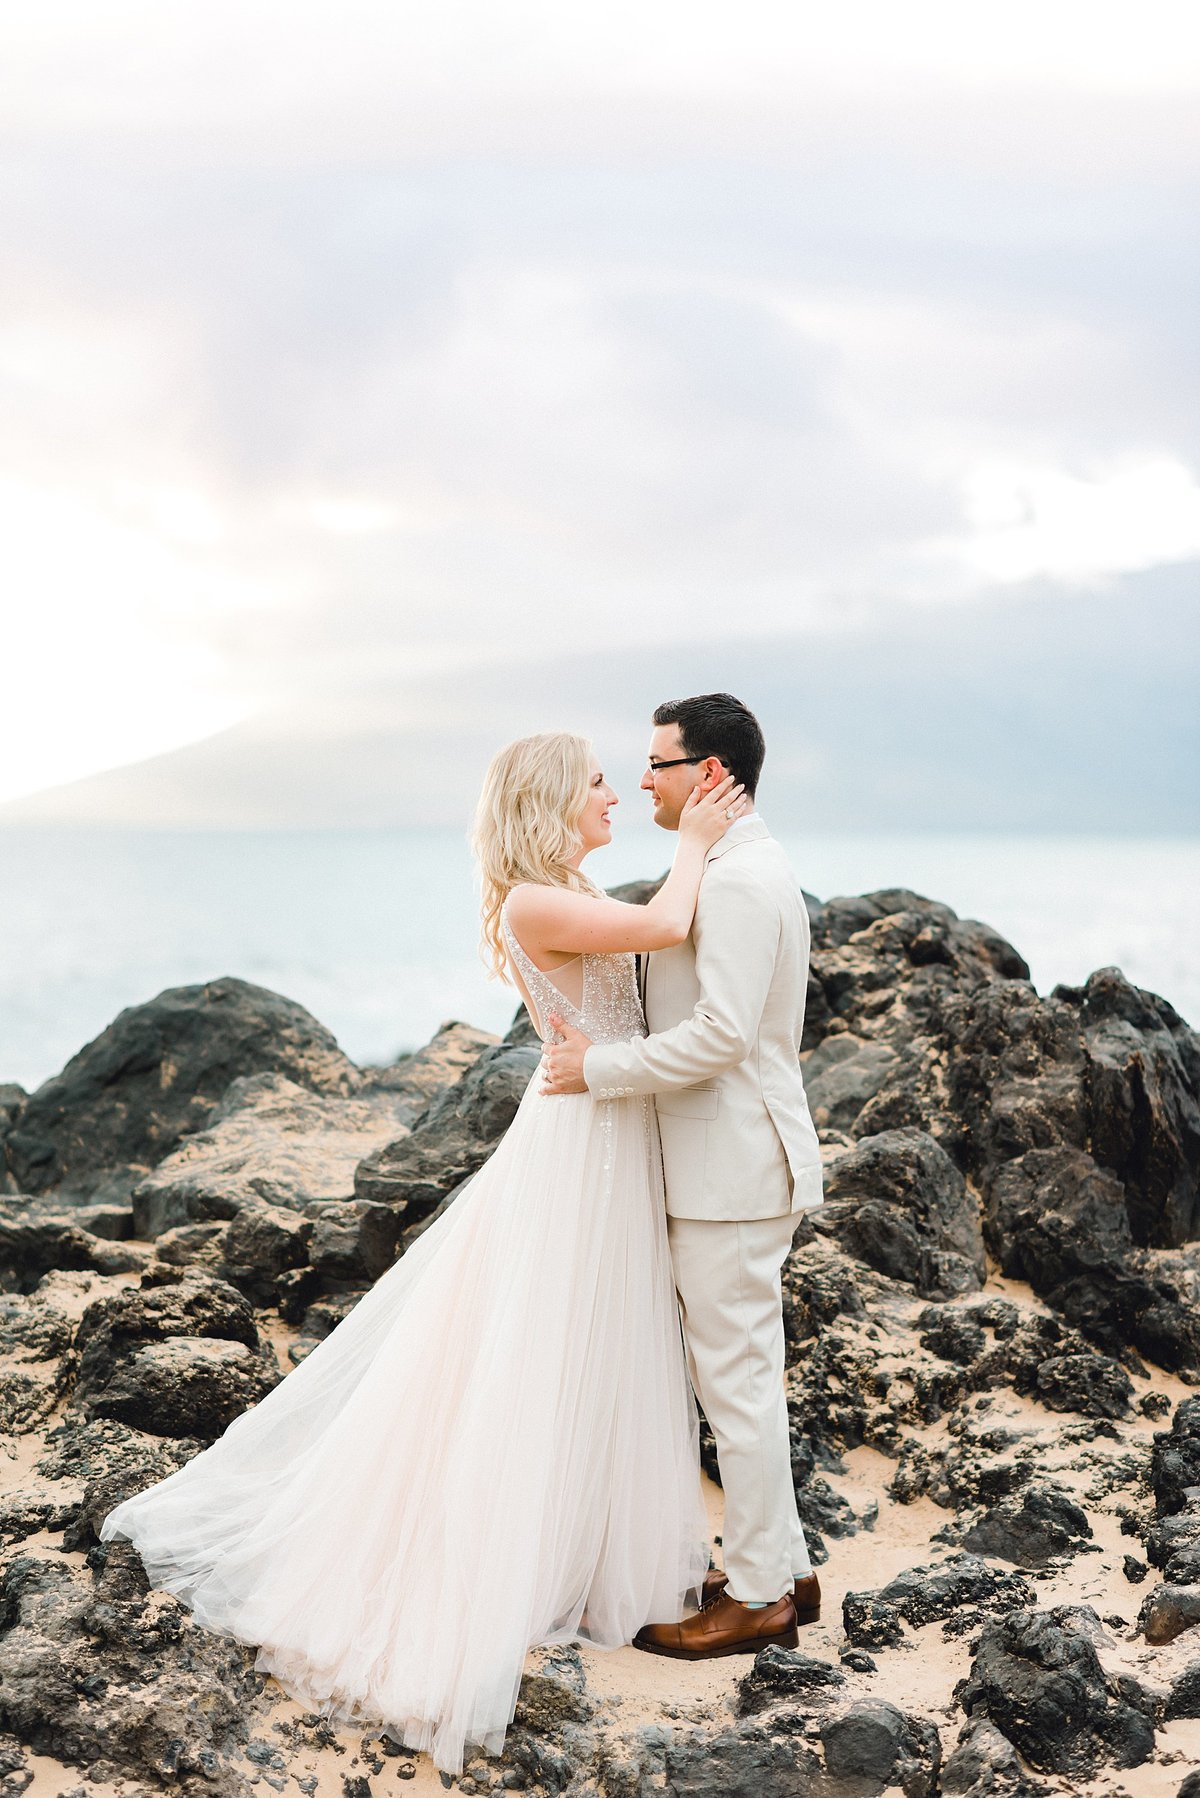 jenny_vargas-photography-maui-wedding-photographer-maui-wedding-photography-maui-photographer-maui-photographers-maui-elopement-photographer-maui-elopement-maui-wedding-maui-engagement-photographer_0877